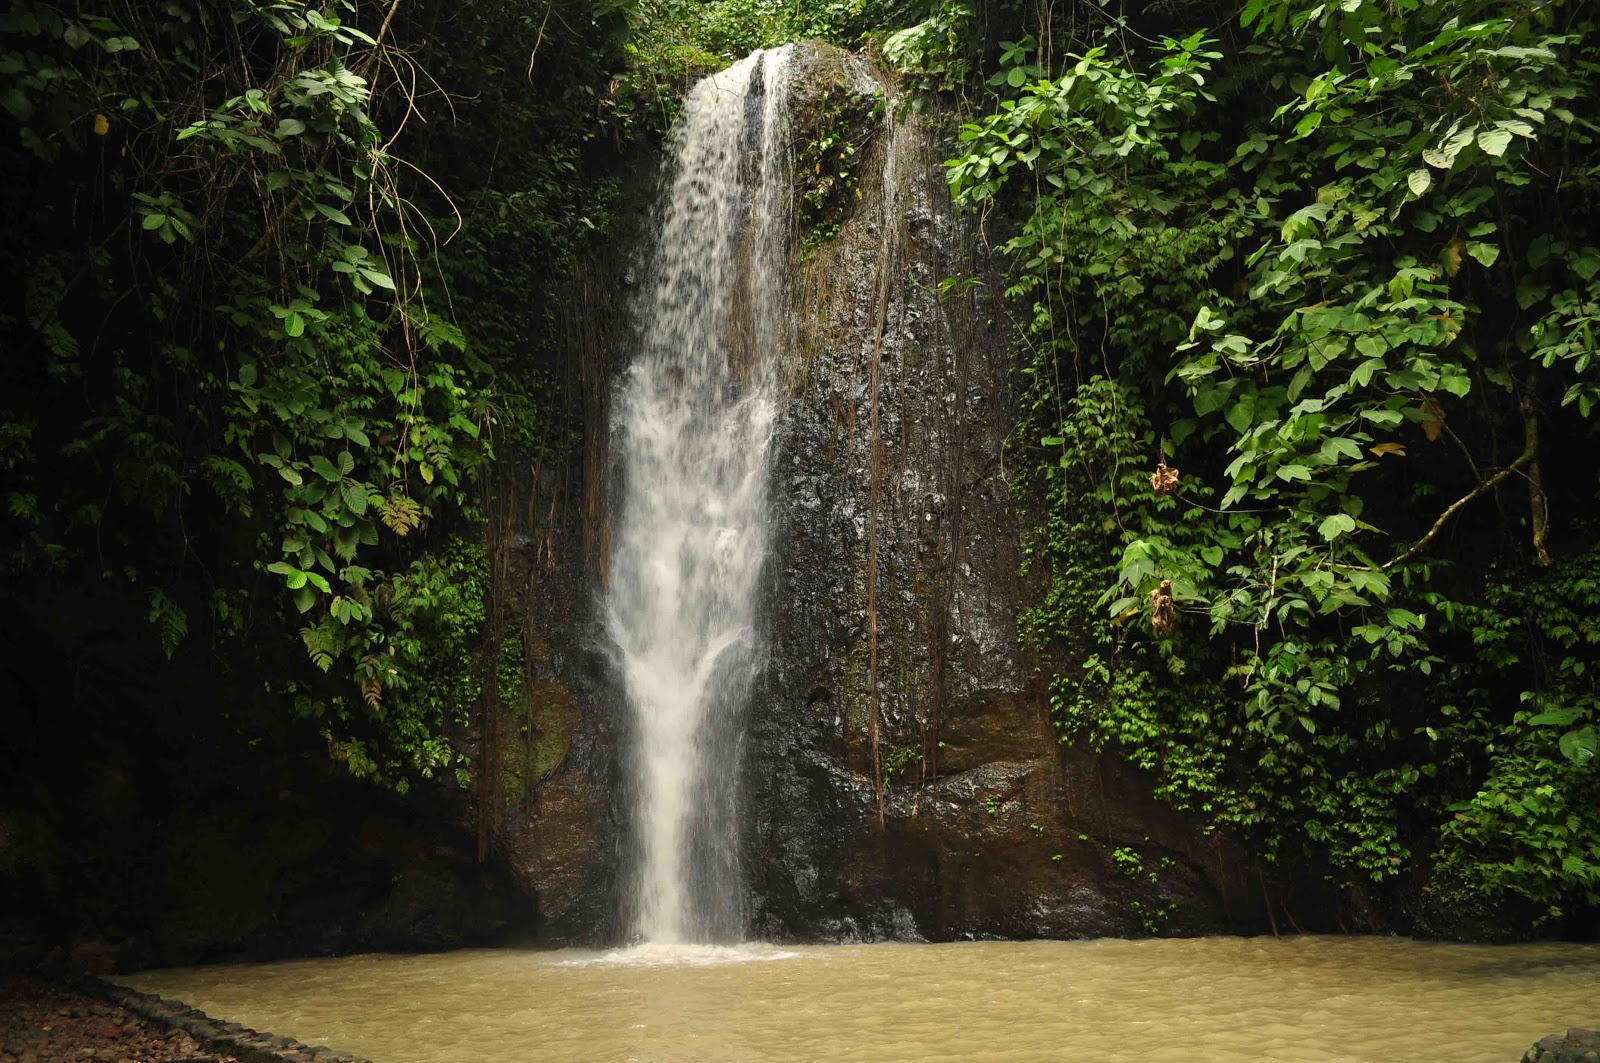 Batu Putu Waterfall